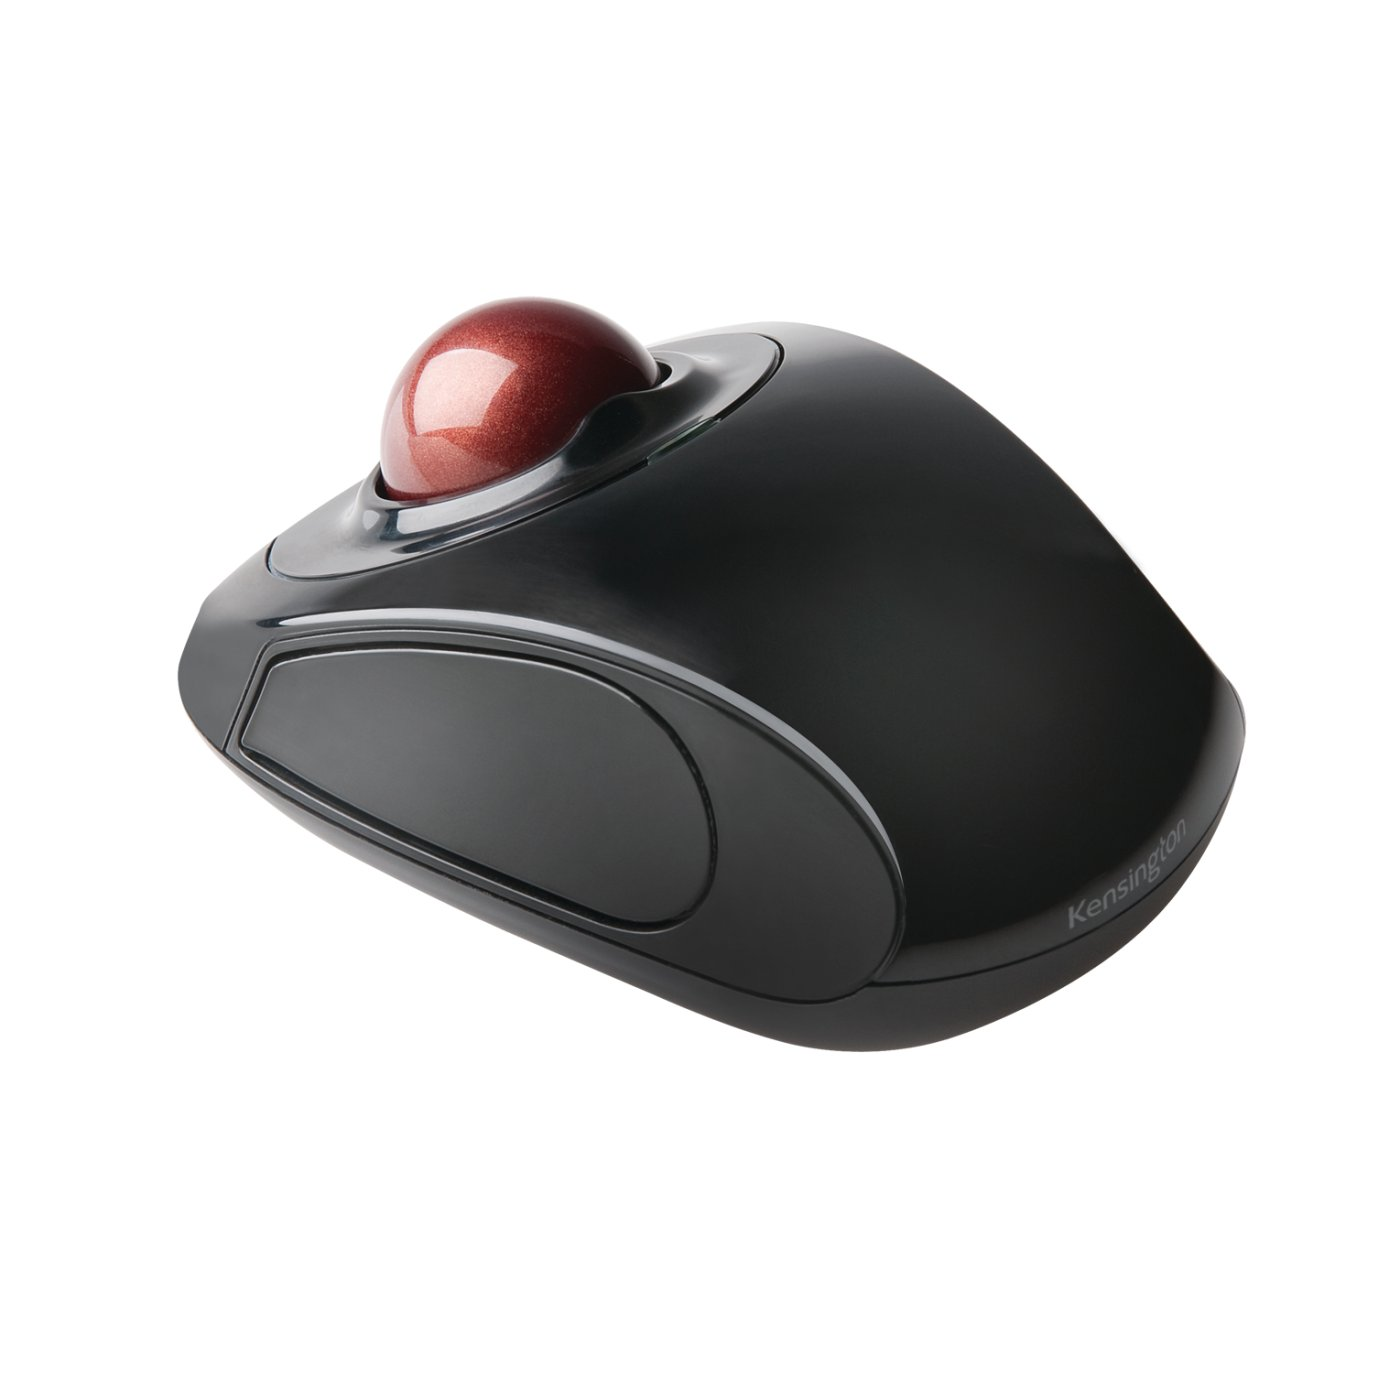 kensington products control trackballs orbit